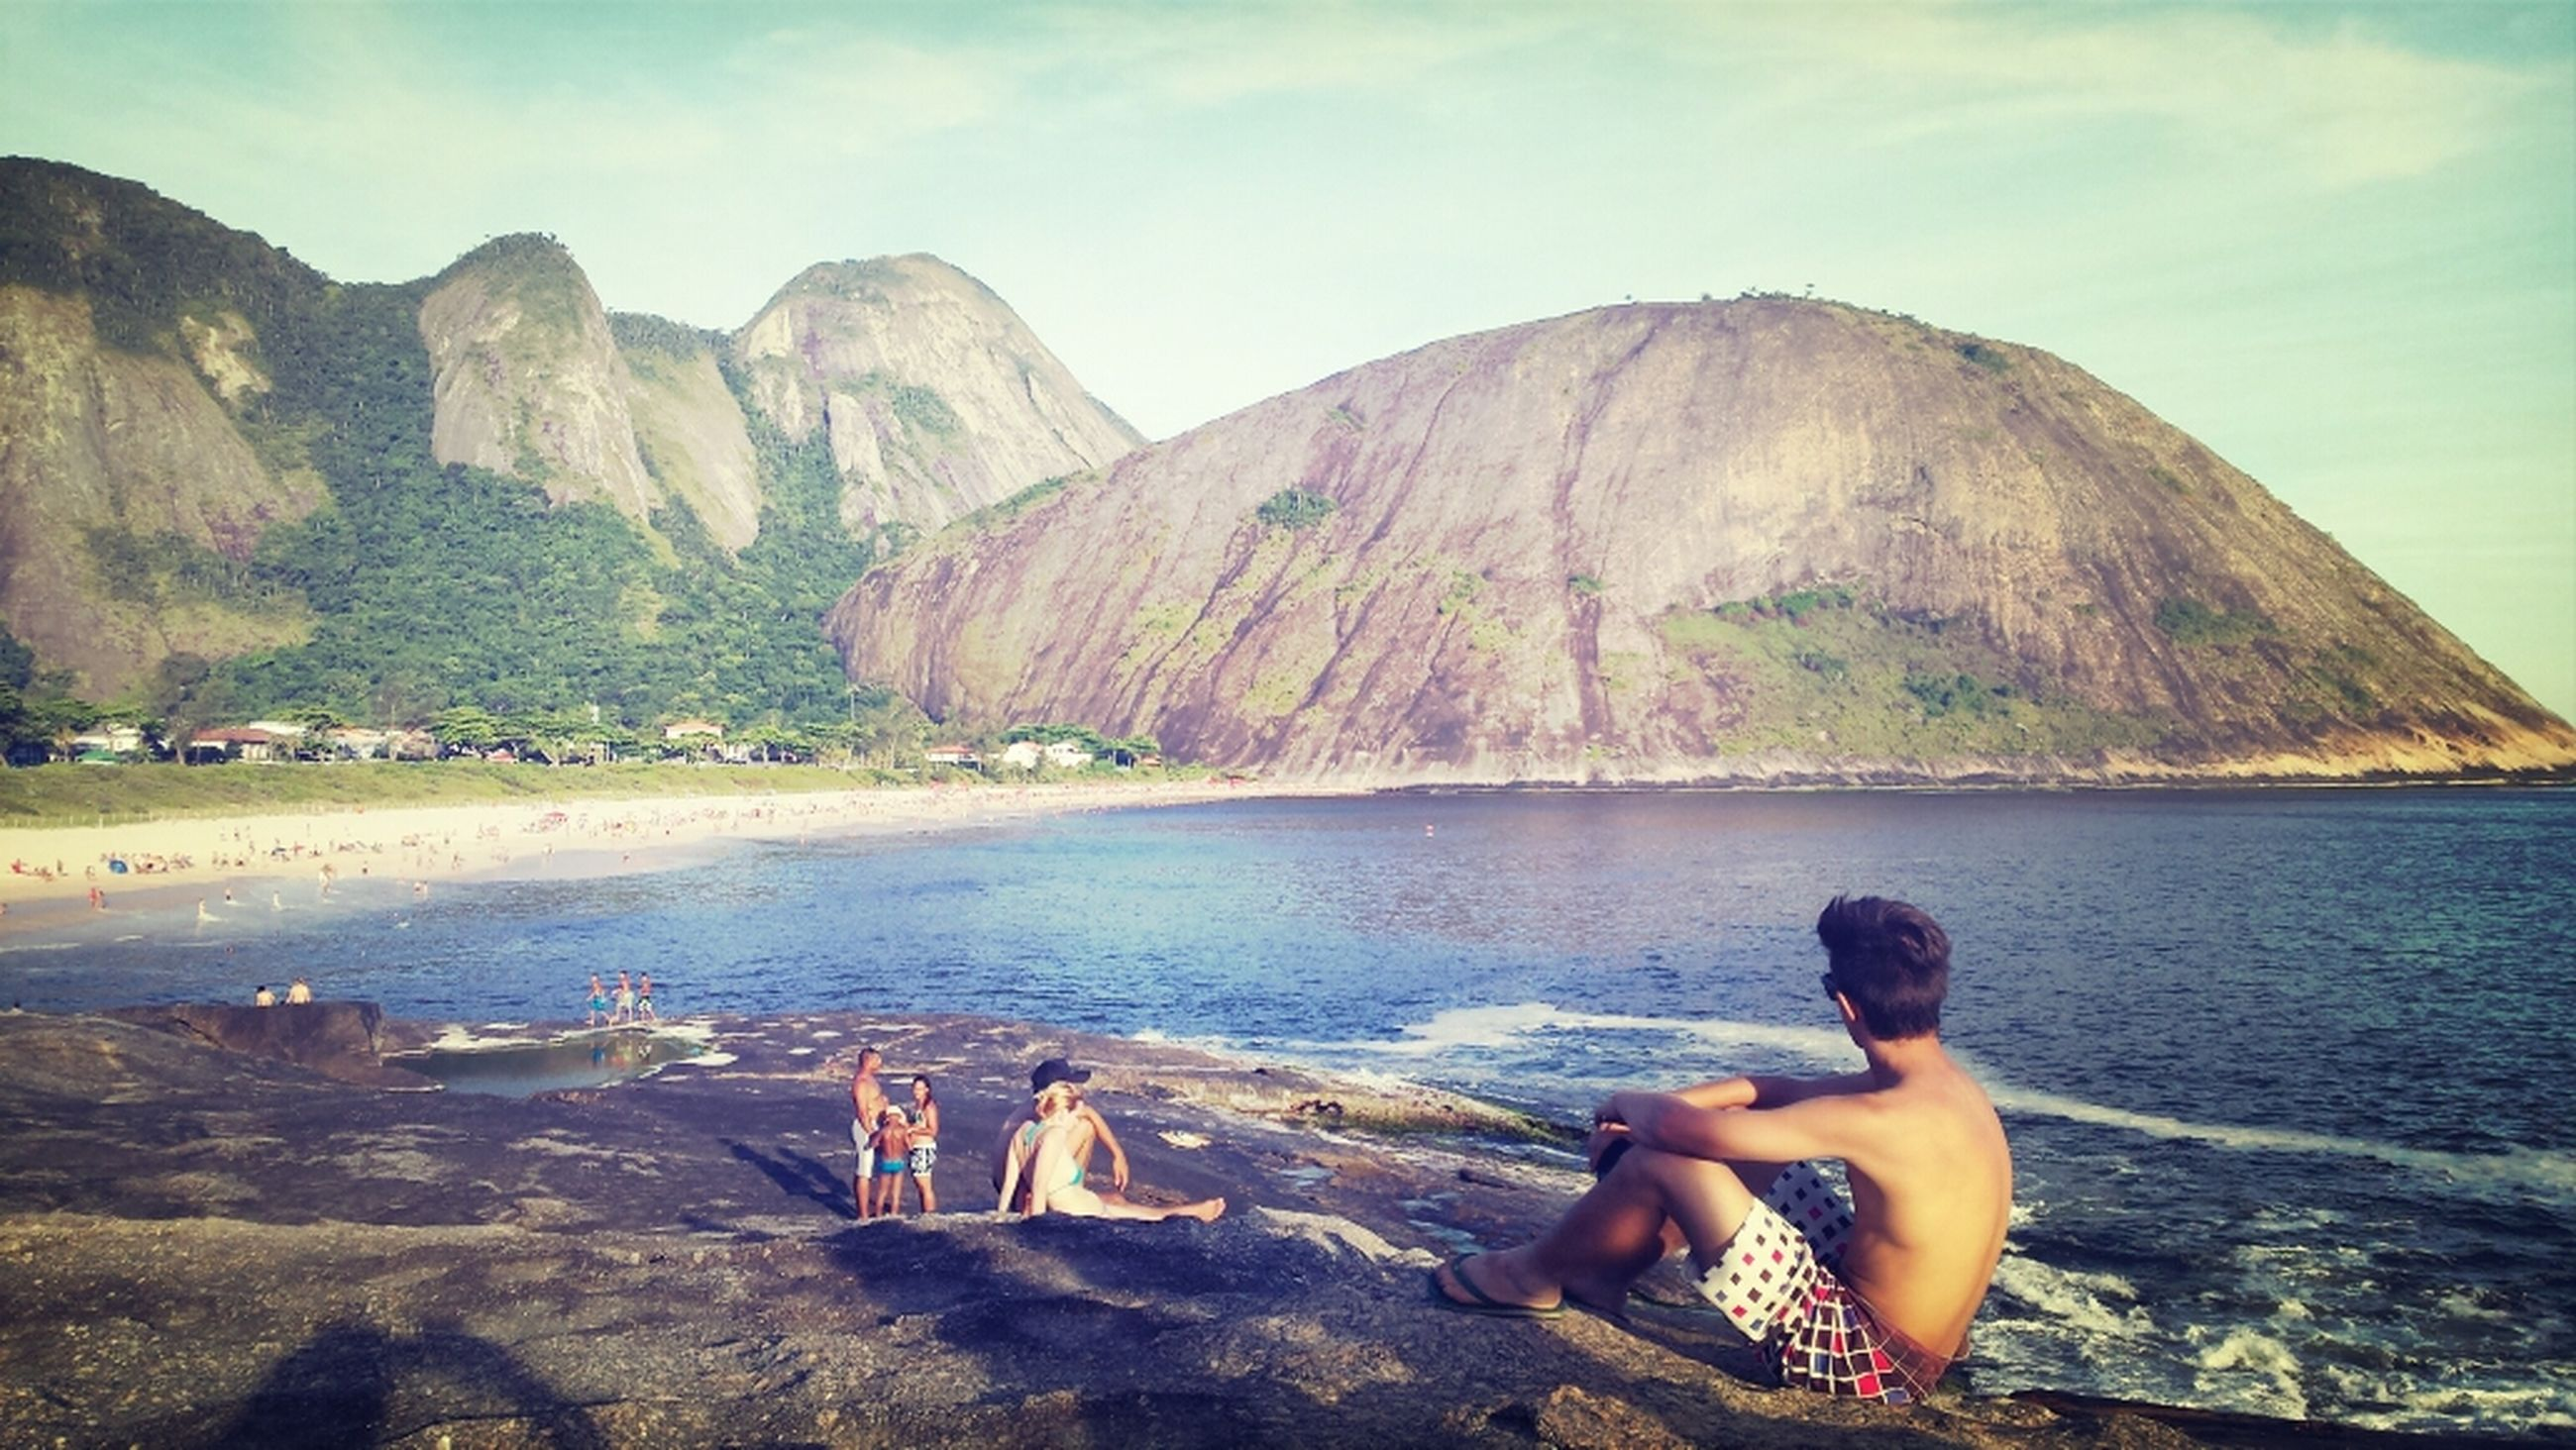 water, leisure activity, mountain, lifestyles, rock - object, vacations, sea, scenics, beauty in nature, tranquility, person, tranquil scene, nature, sky, relaxation, beach, men, sitting